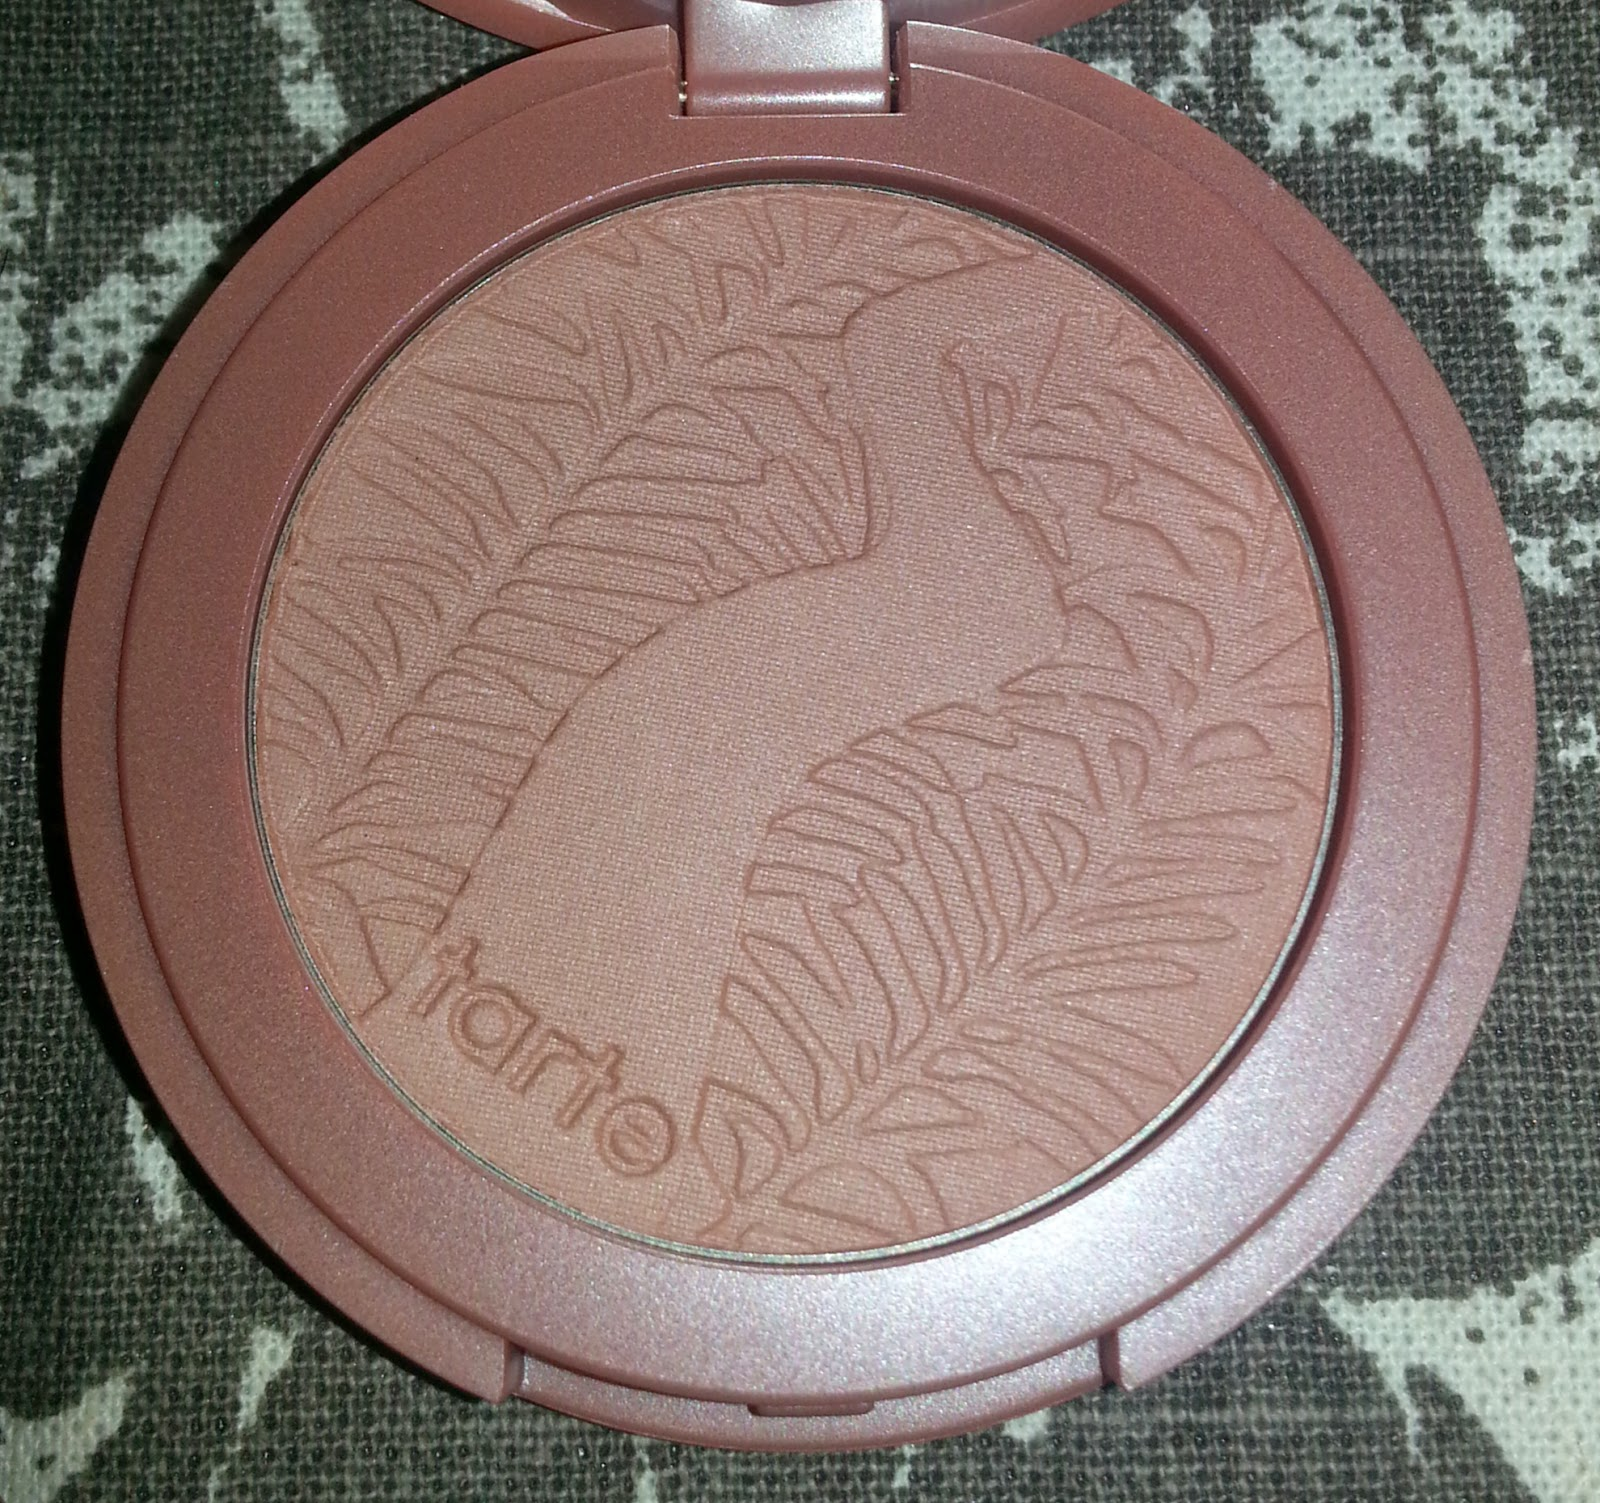 Tarte Amazonian Clay 12 Hour Blush in Exposed